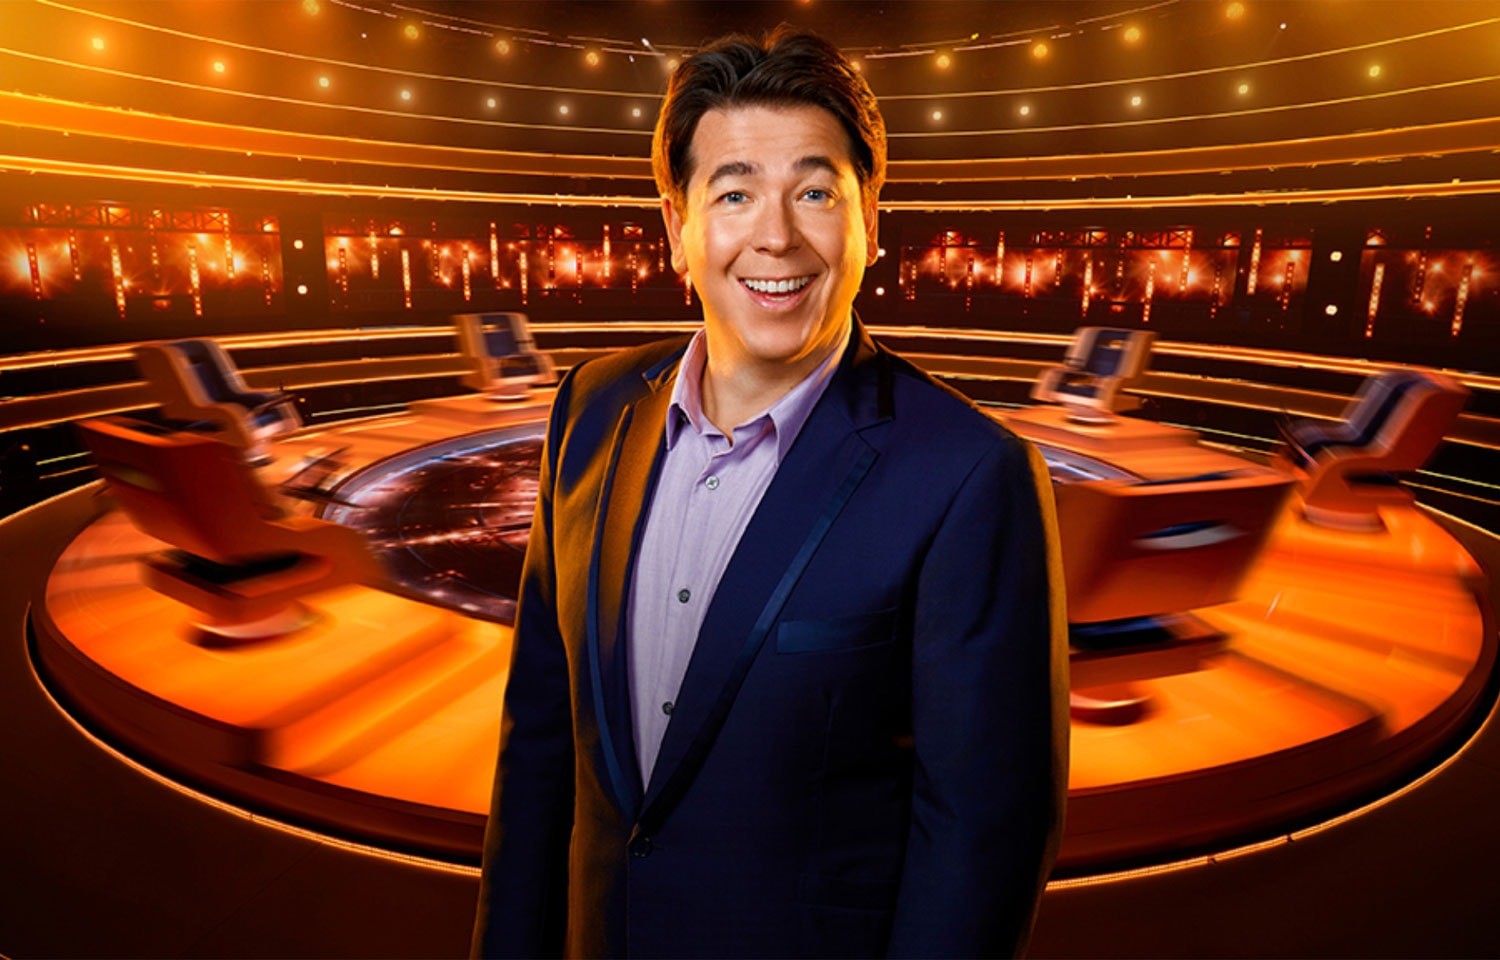 MICHAEL MCINTYRE'S THE WHEEL SPINS BACK TO BBC ONE